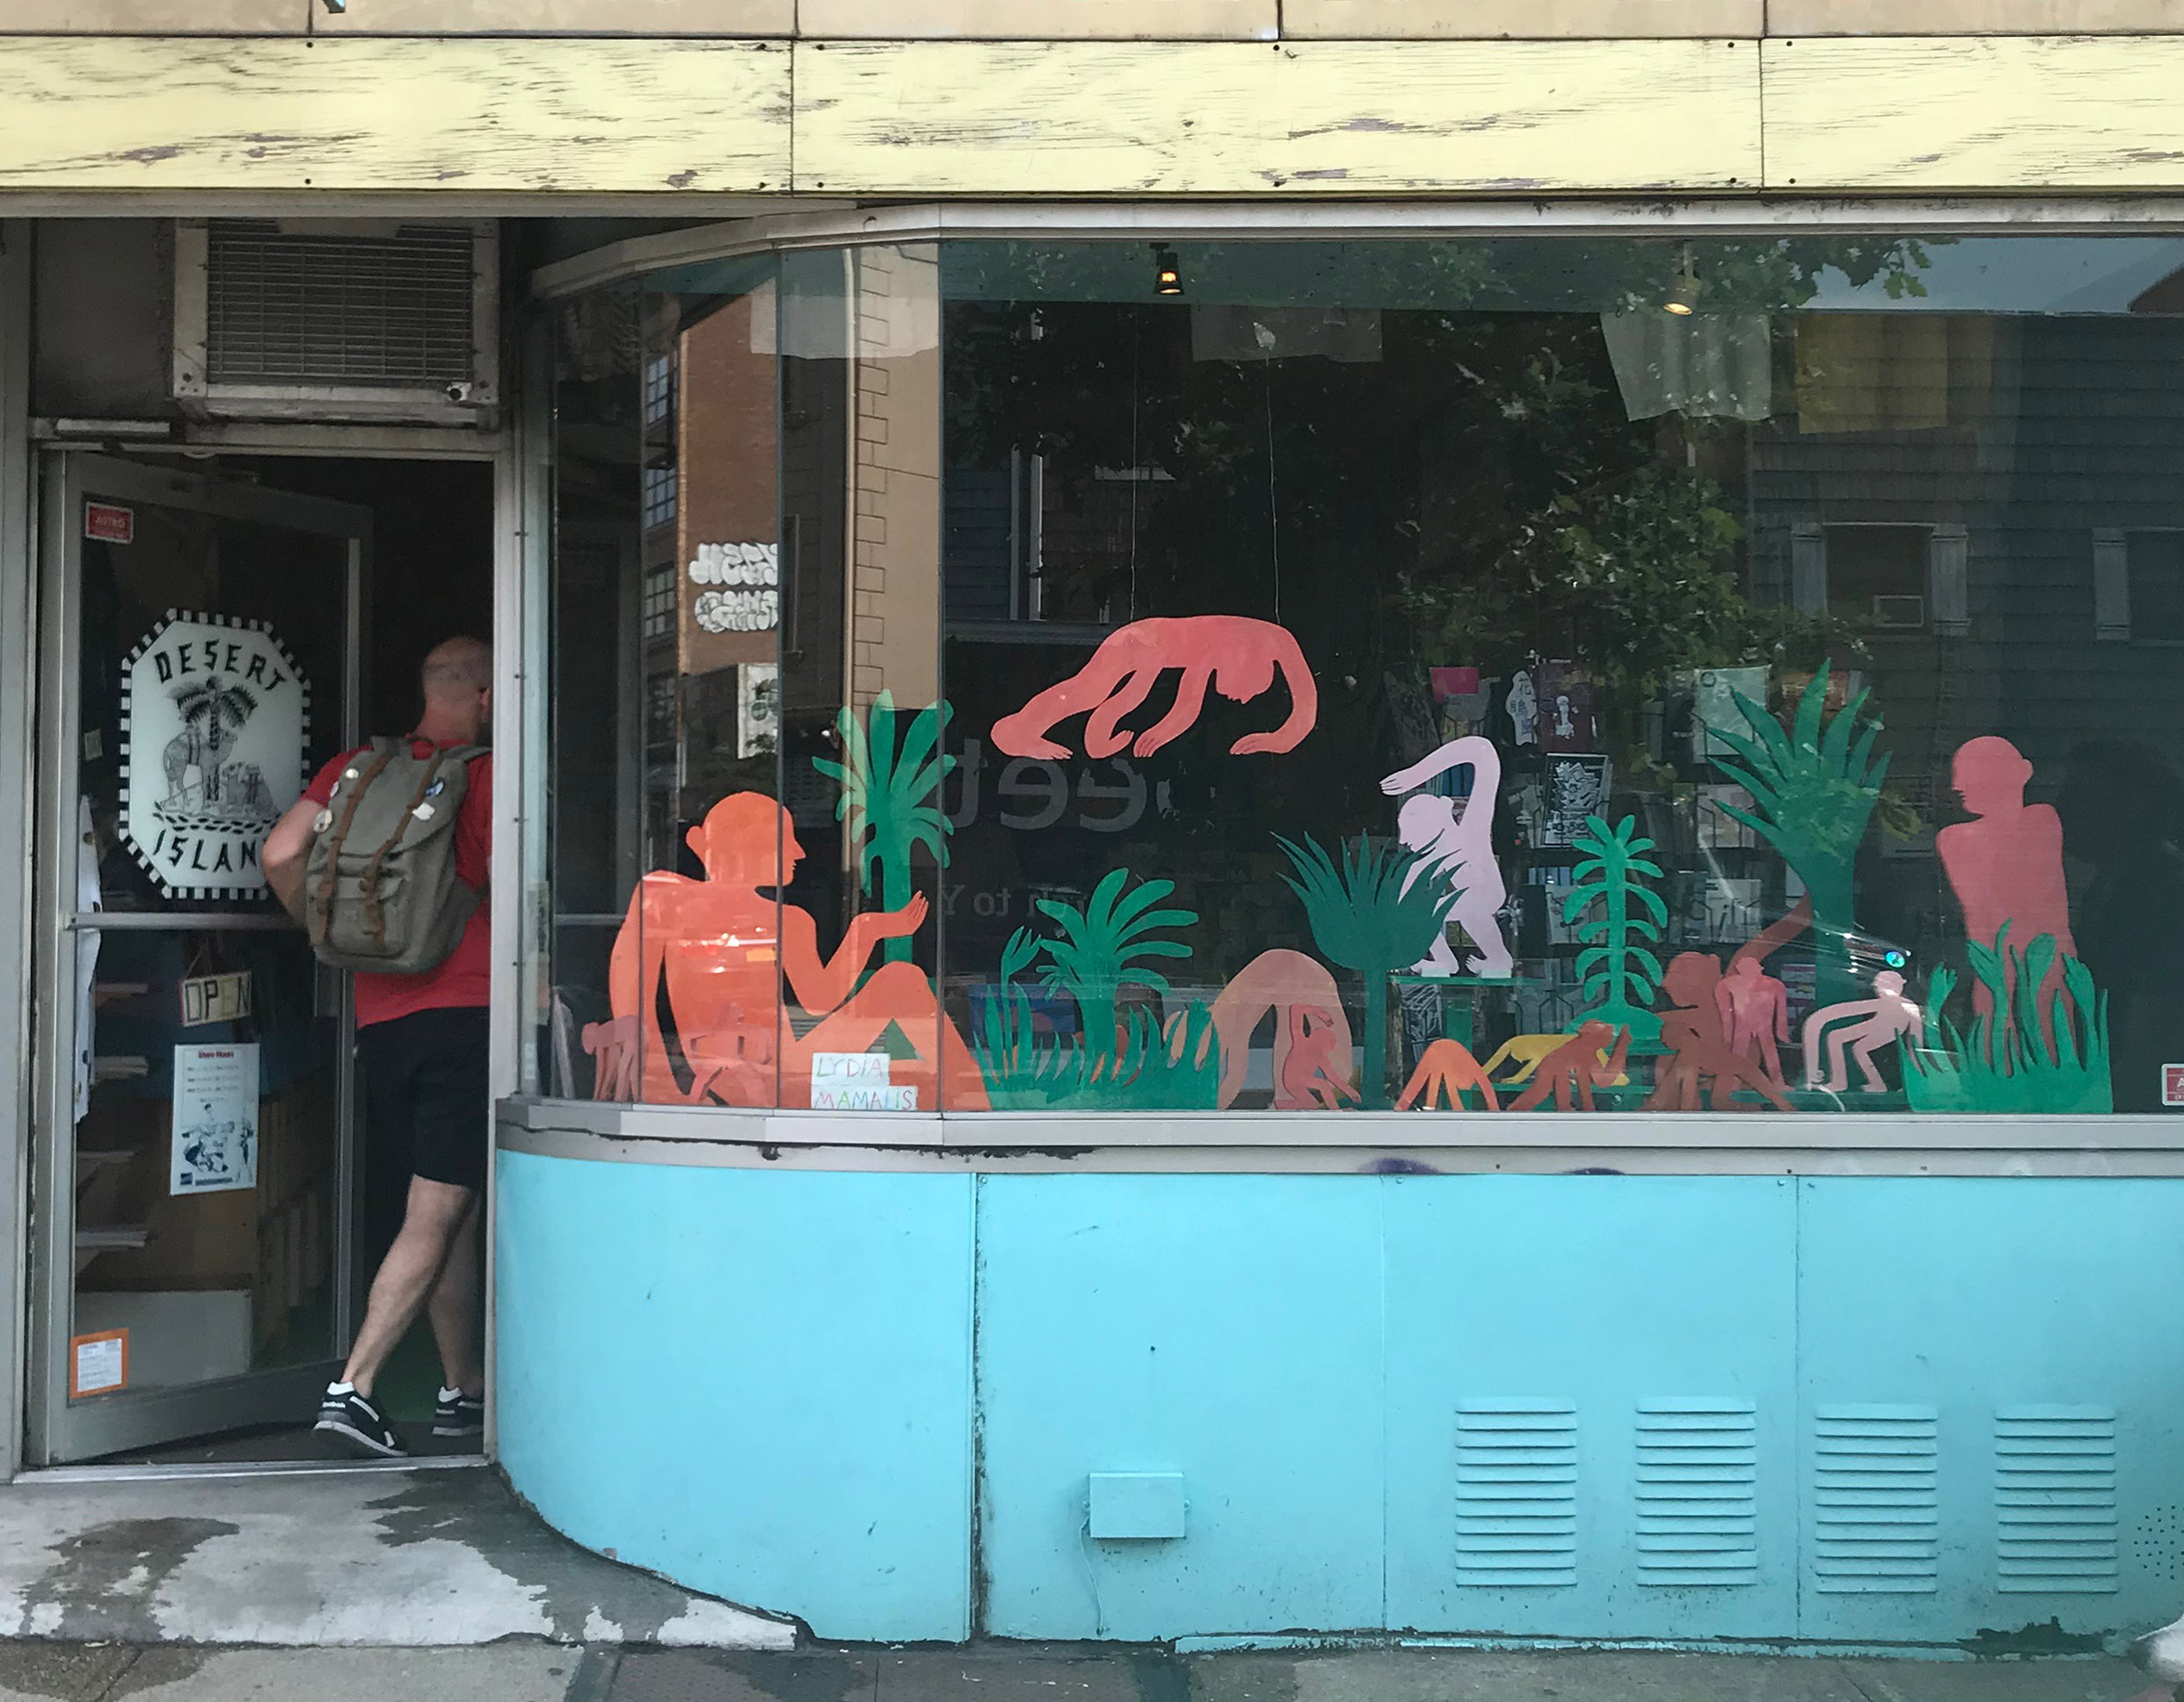 desert island window display 2019 sculpture .jpg